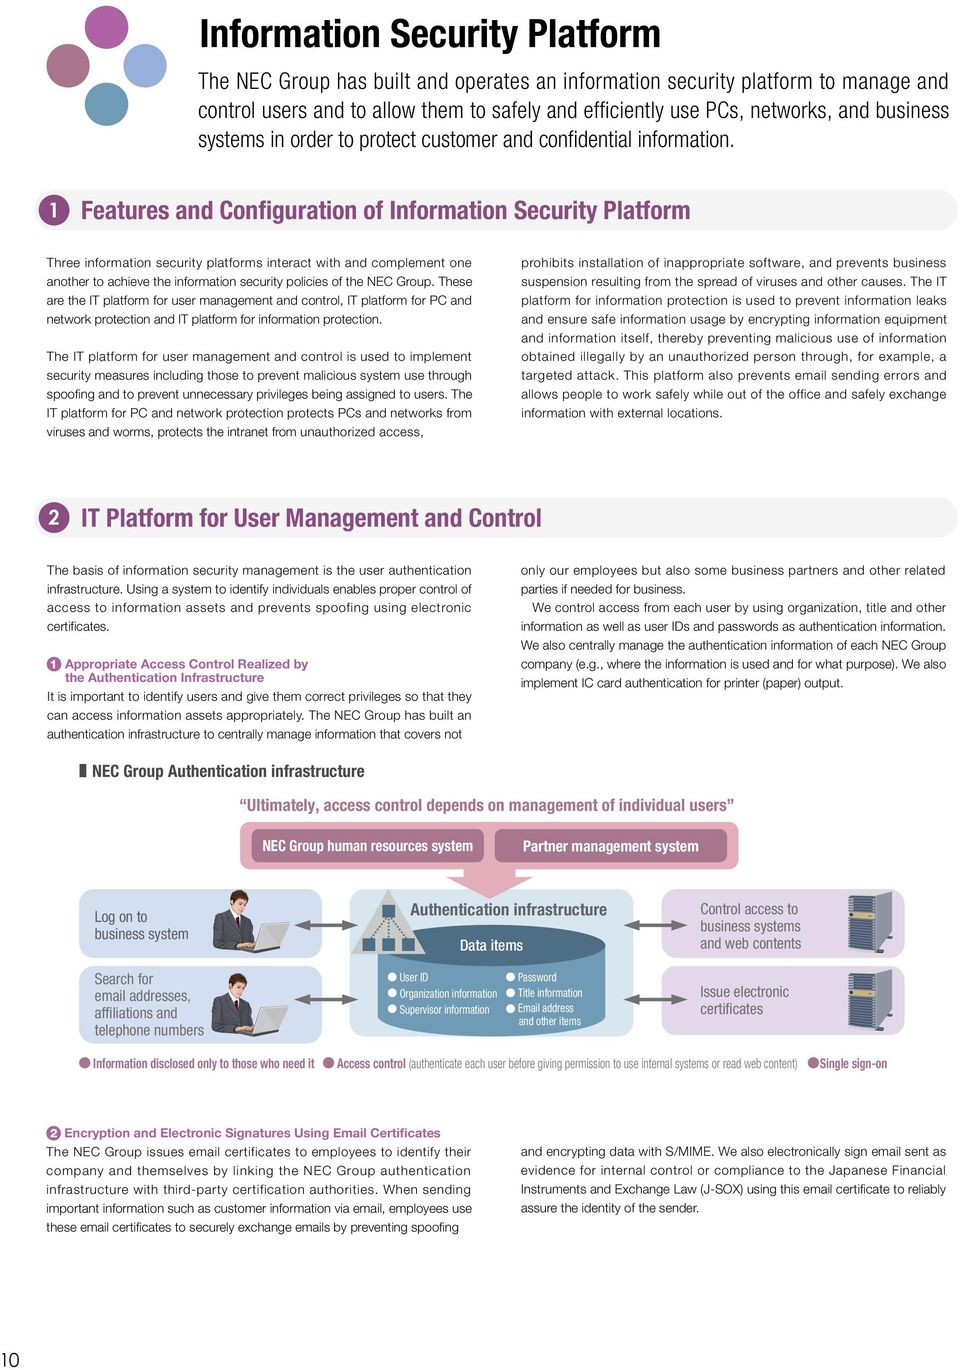 Information Security Report Pdf